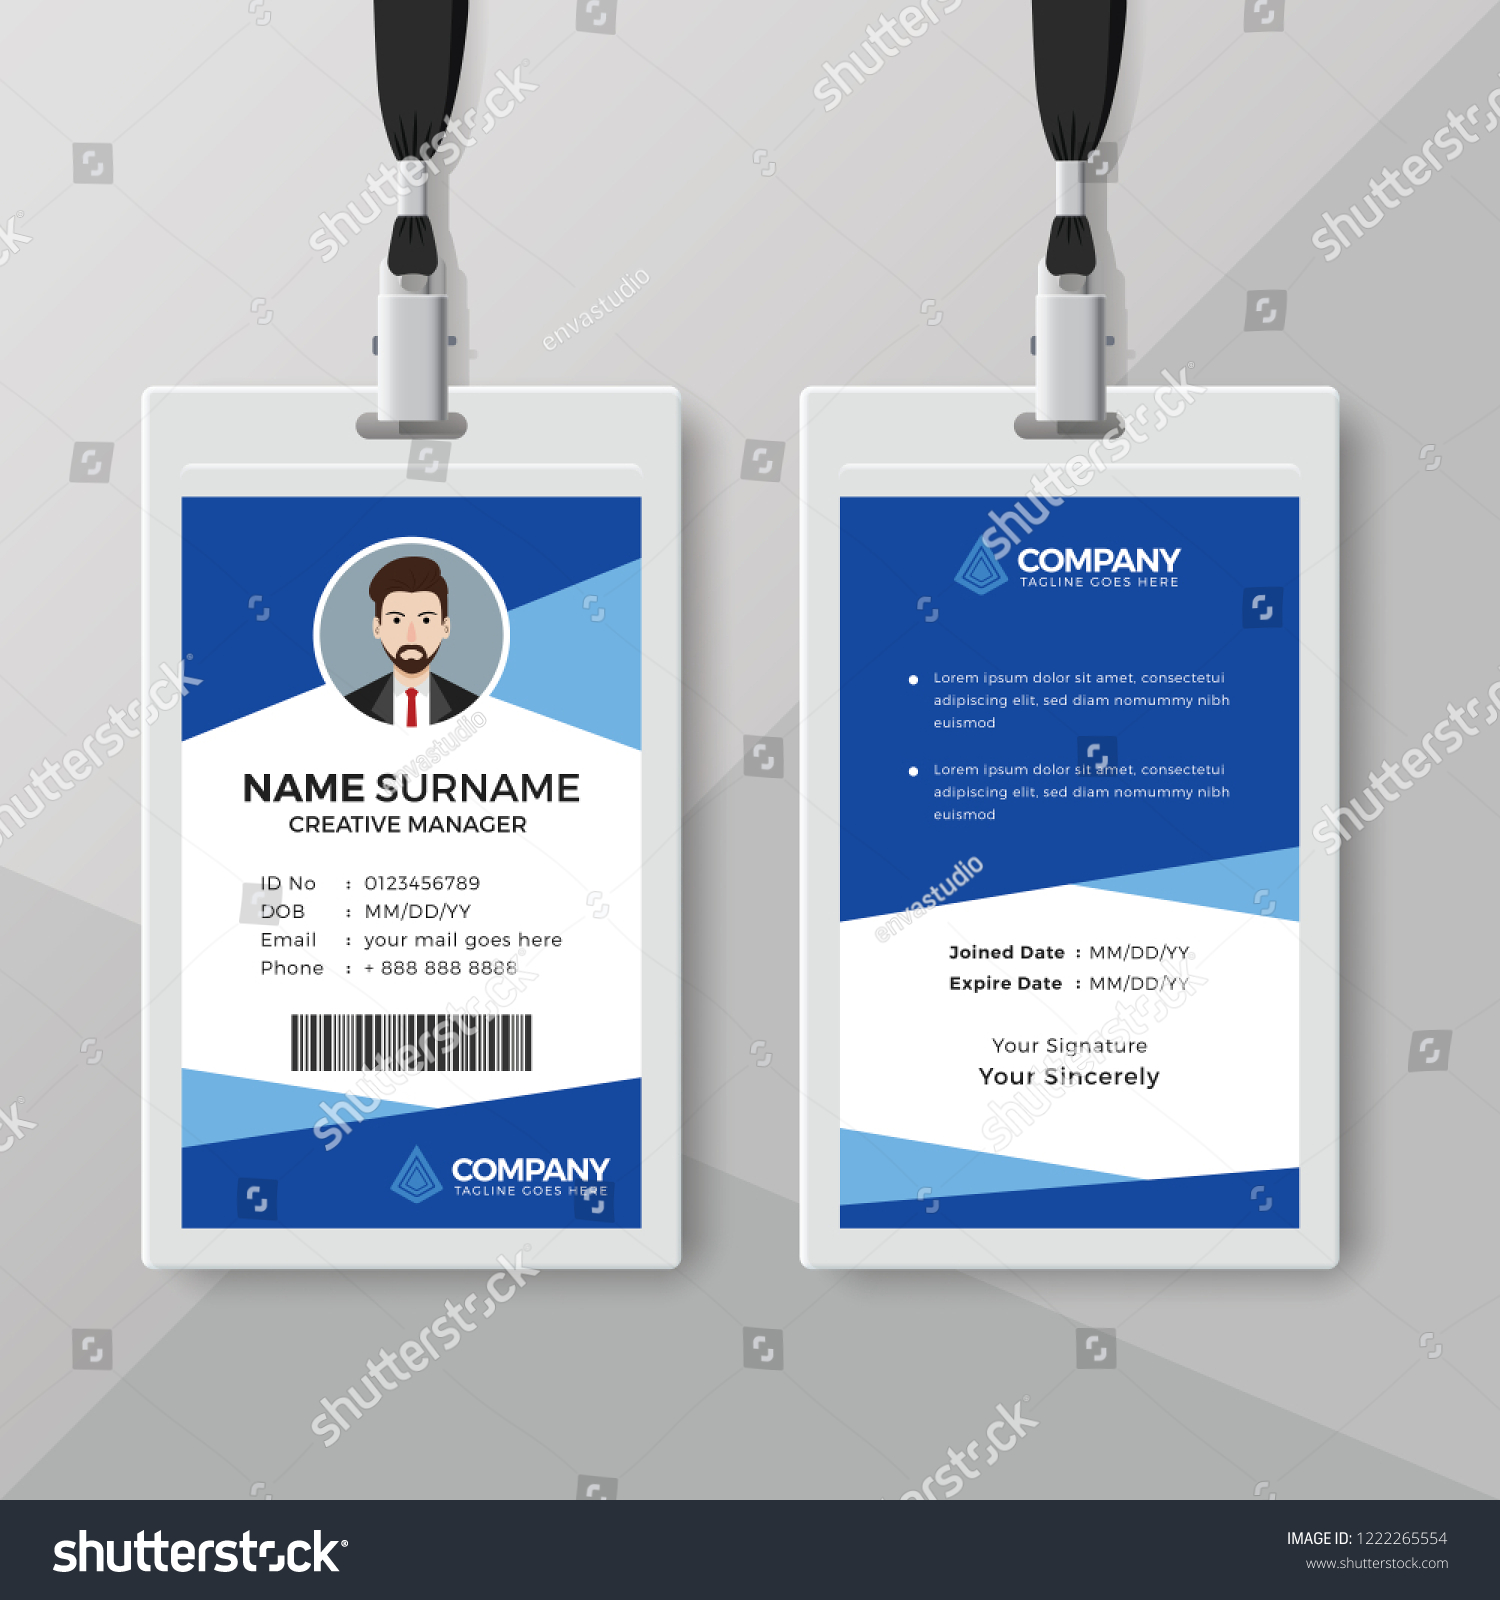 They promote worker accountability, reinforce your brand and are especially helpful for customer service purposes. Blue Employee Id Card Design Template Stock Vector Royalty Free 1222265554